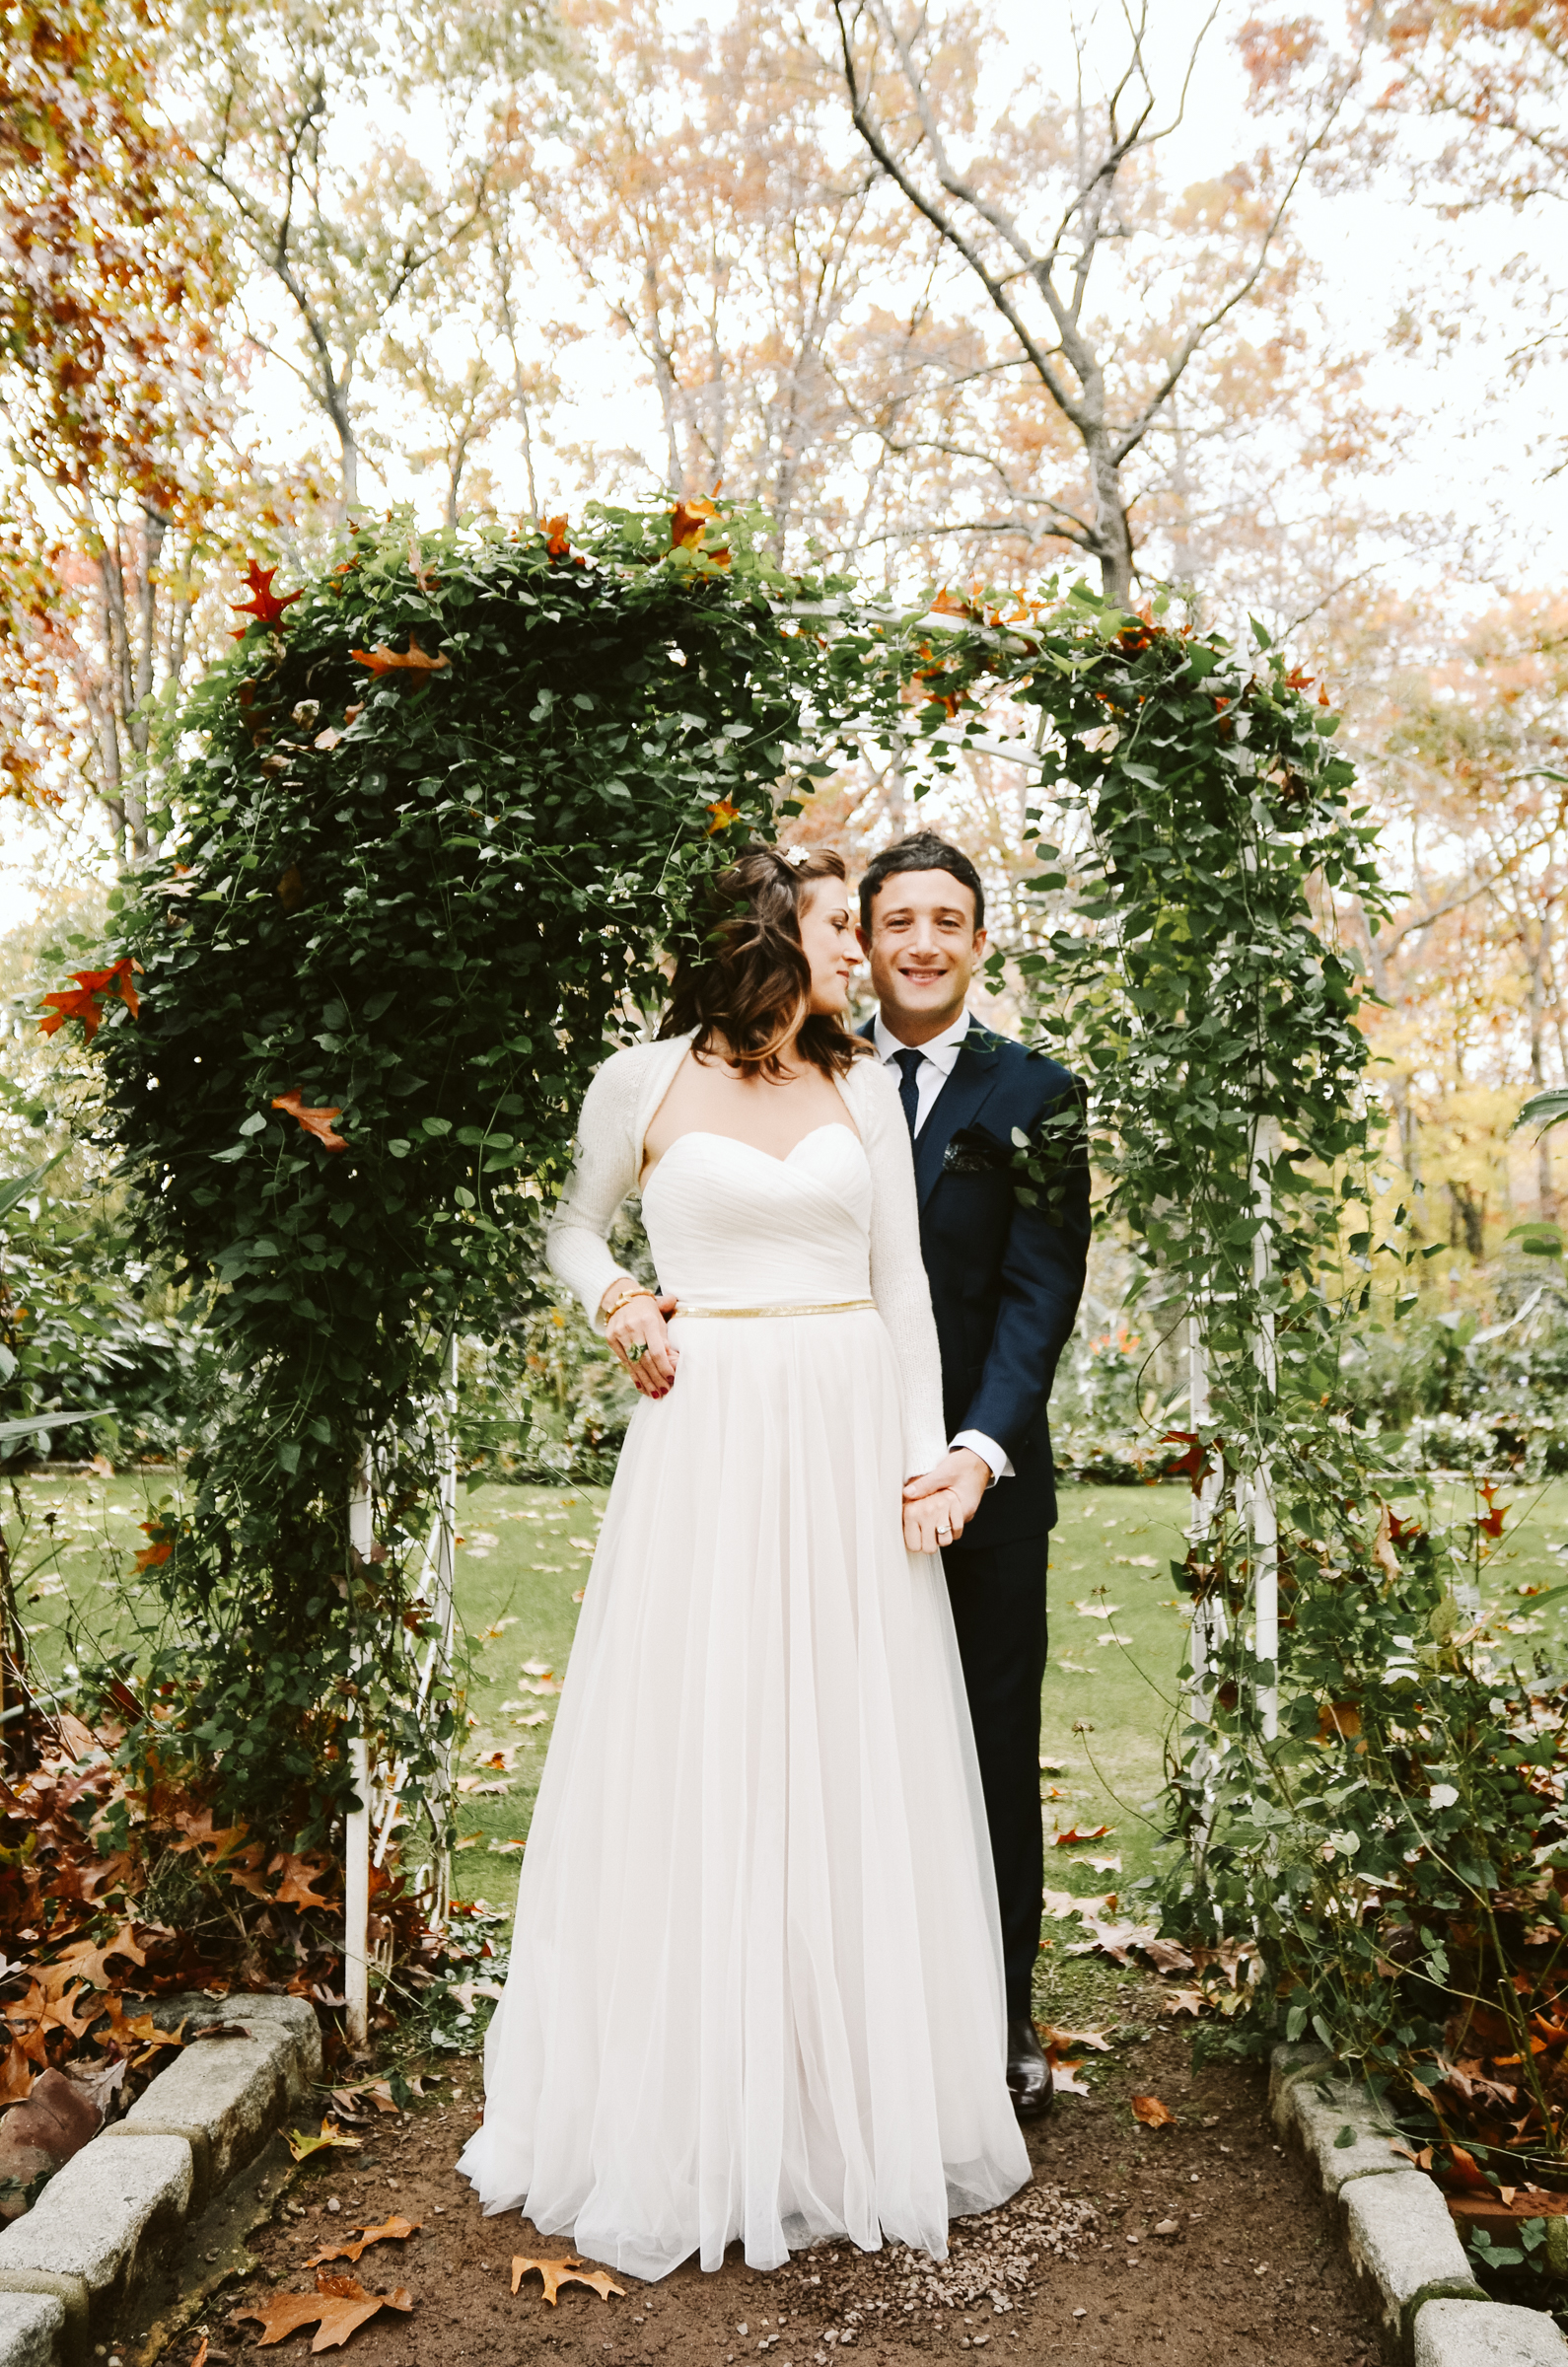 Jen and Drew's Wedding Edited 2019 web-14.jpg